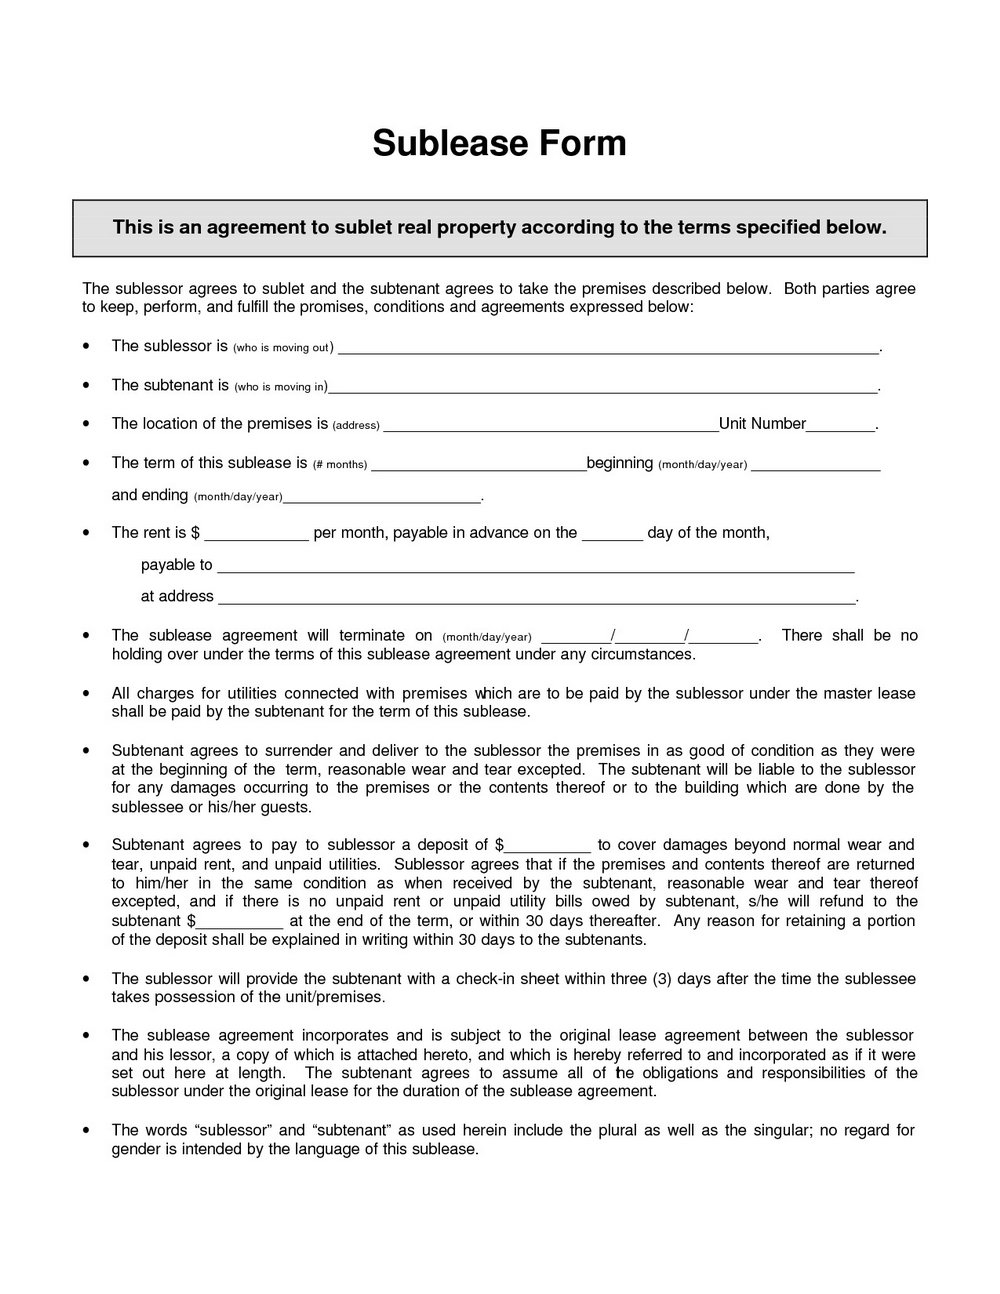 Sublease Agreement Format